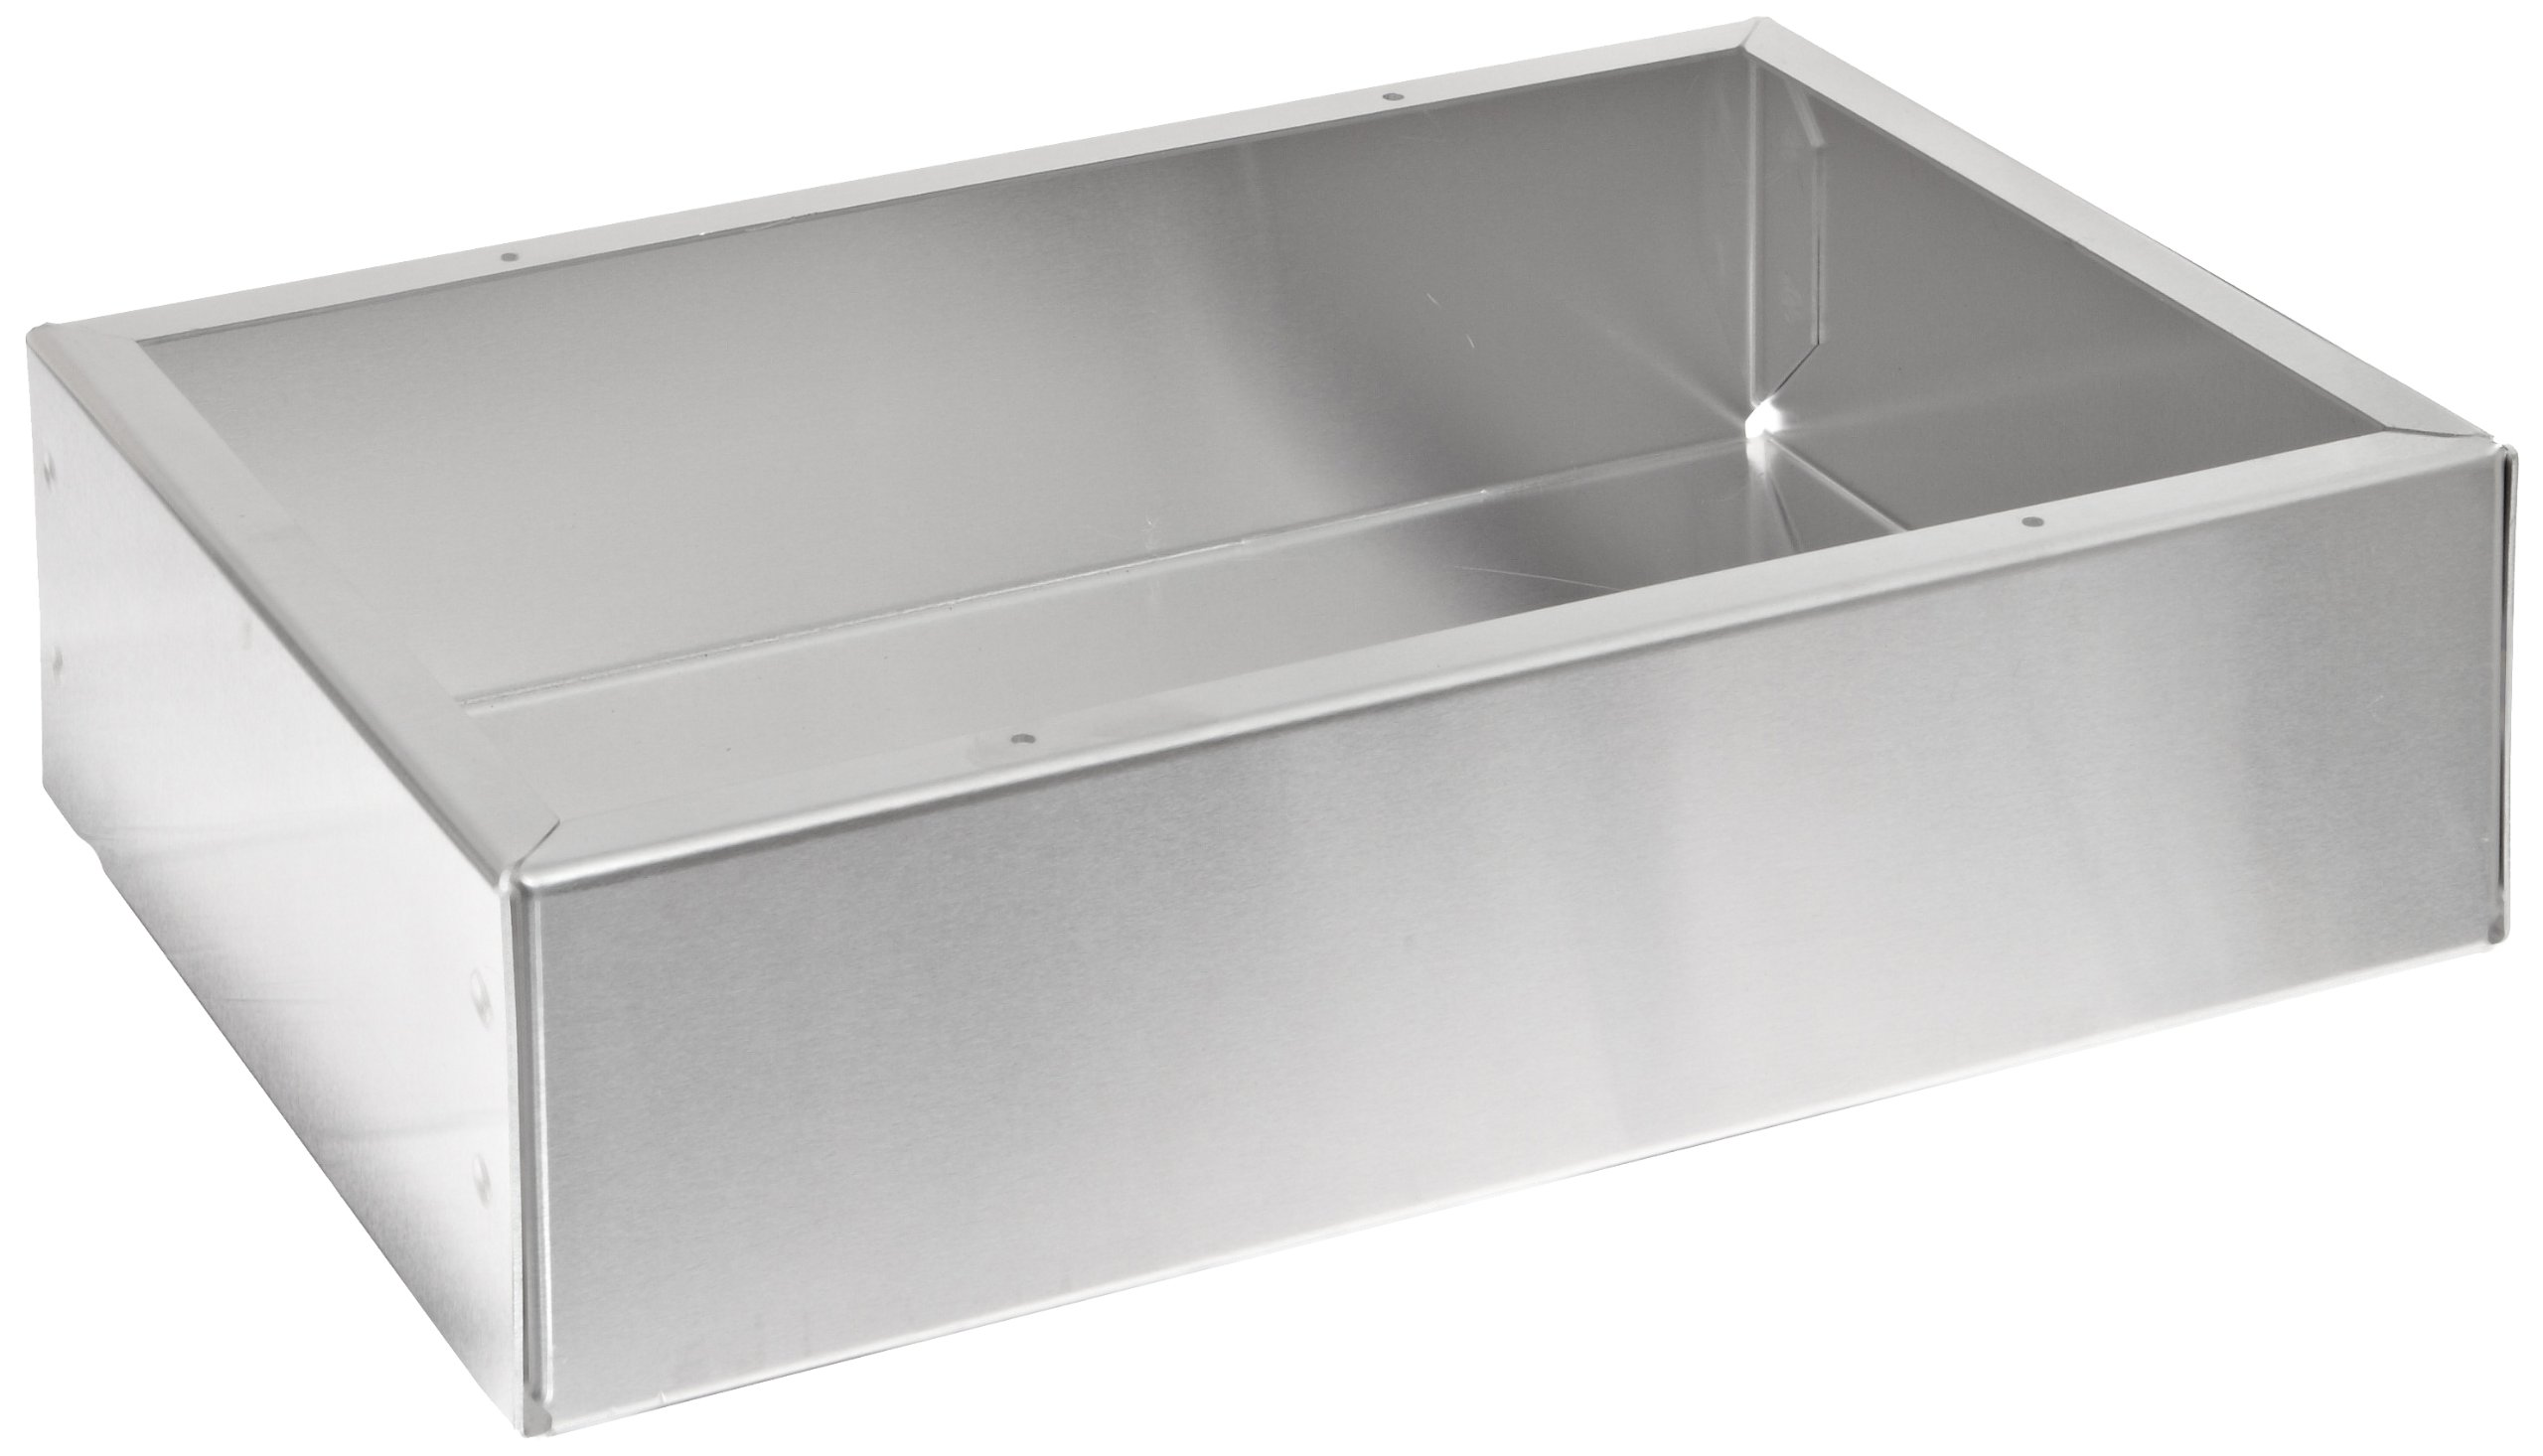 BUD Industries AC-424 Aluminum Chassis, 12'' Length x 8'' Width x 3'' Height, Natural Finish